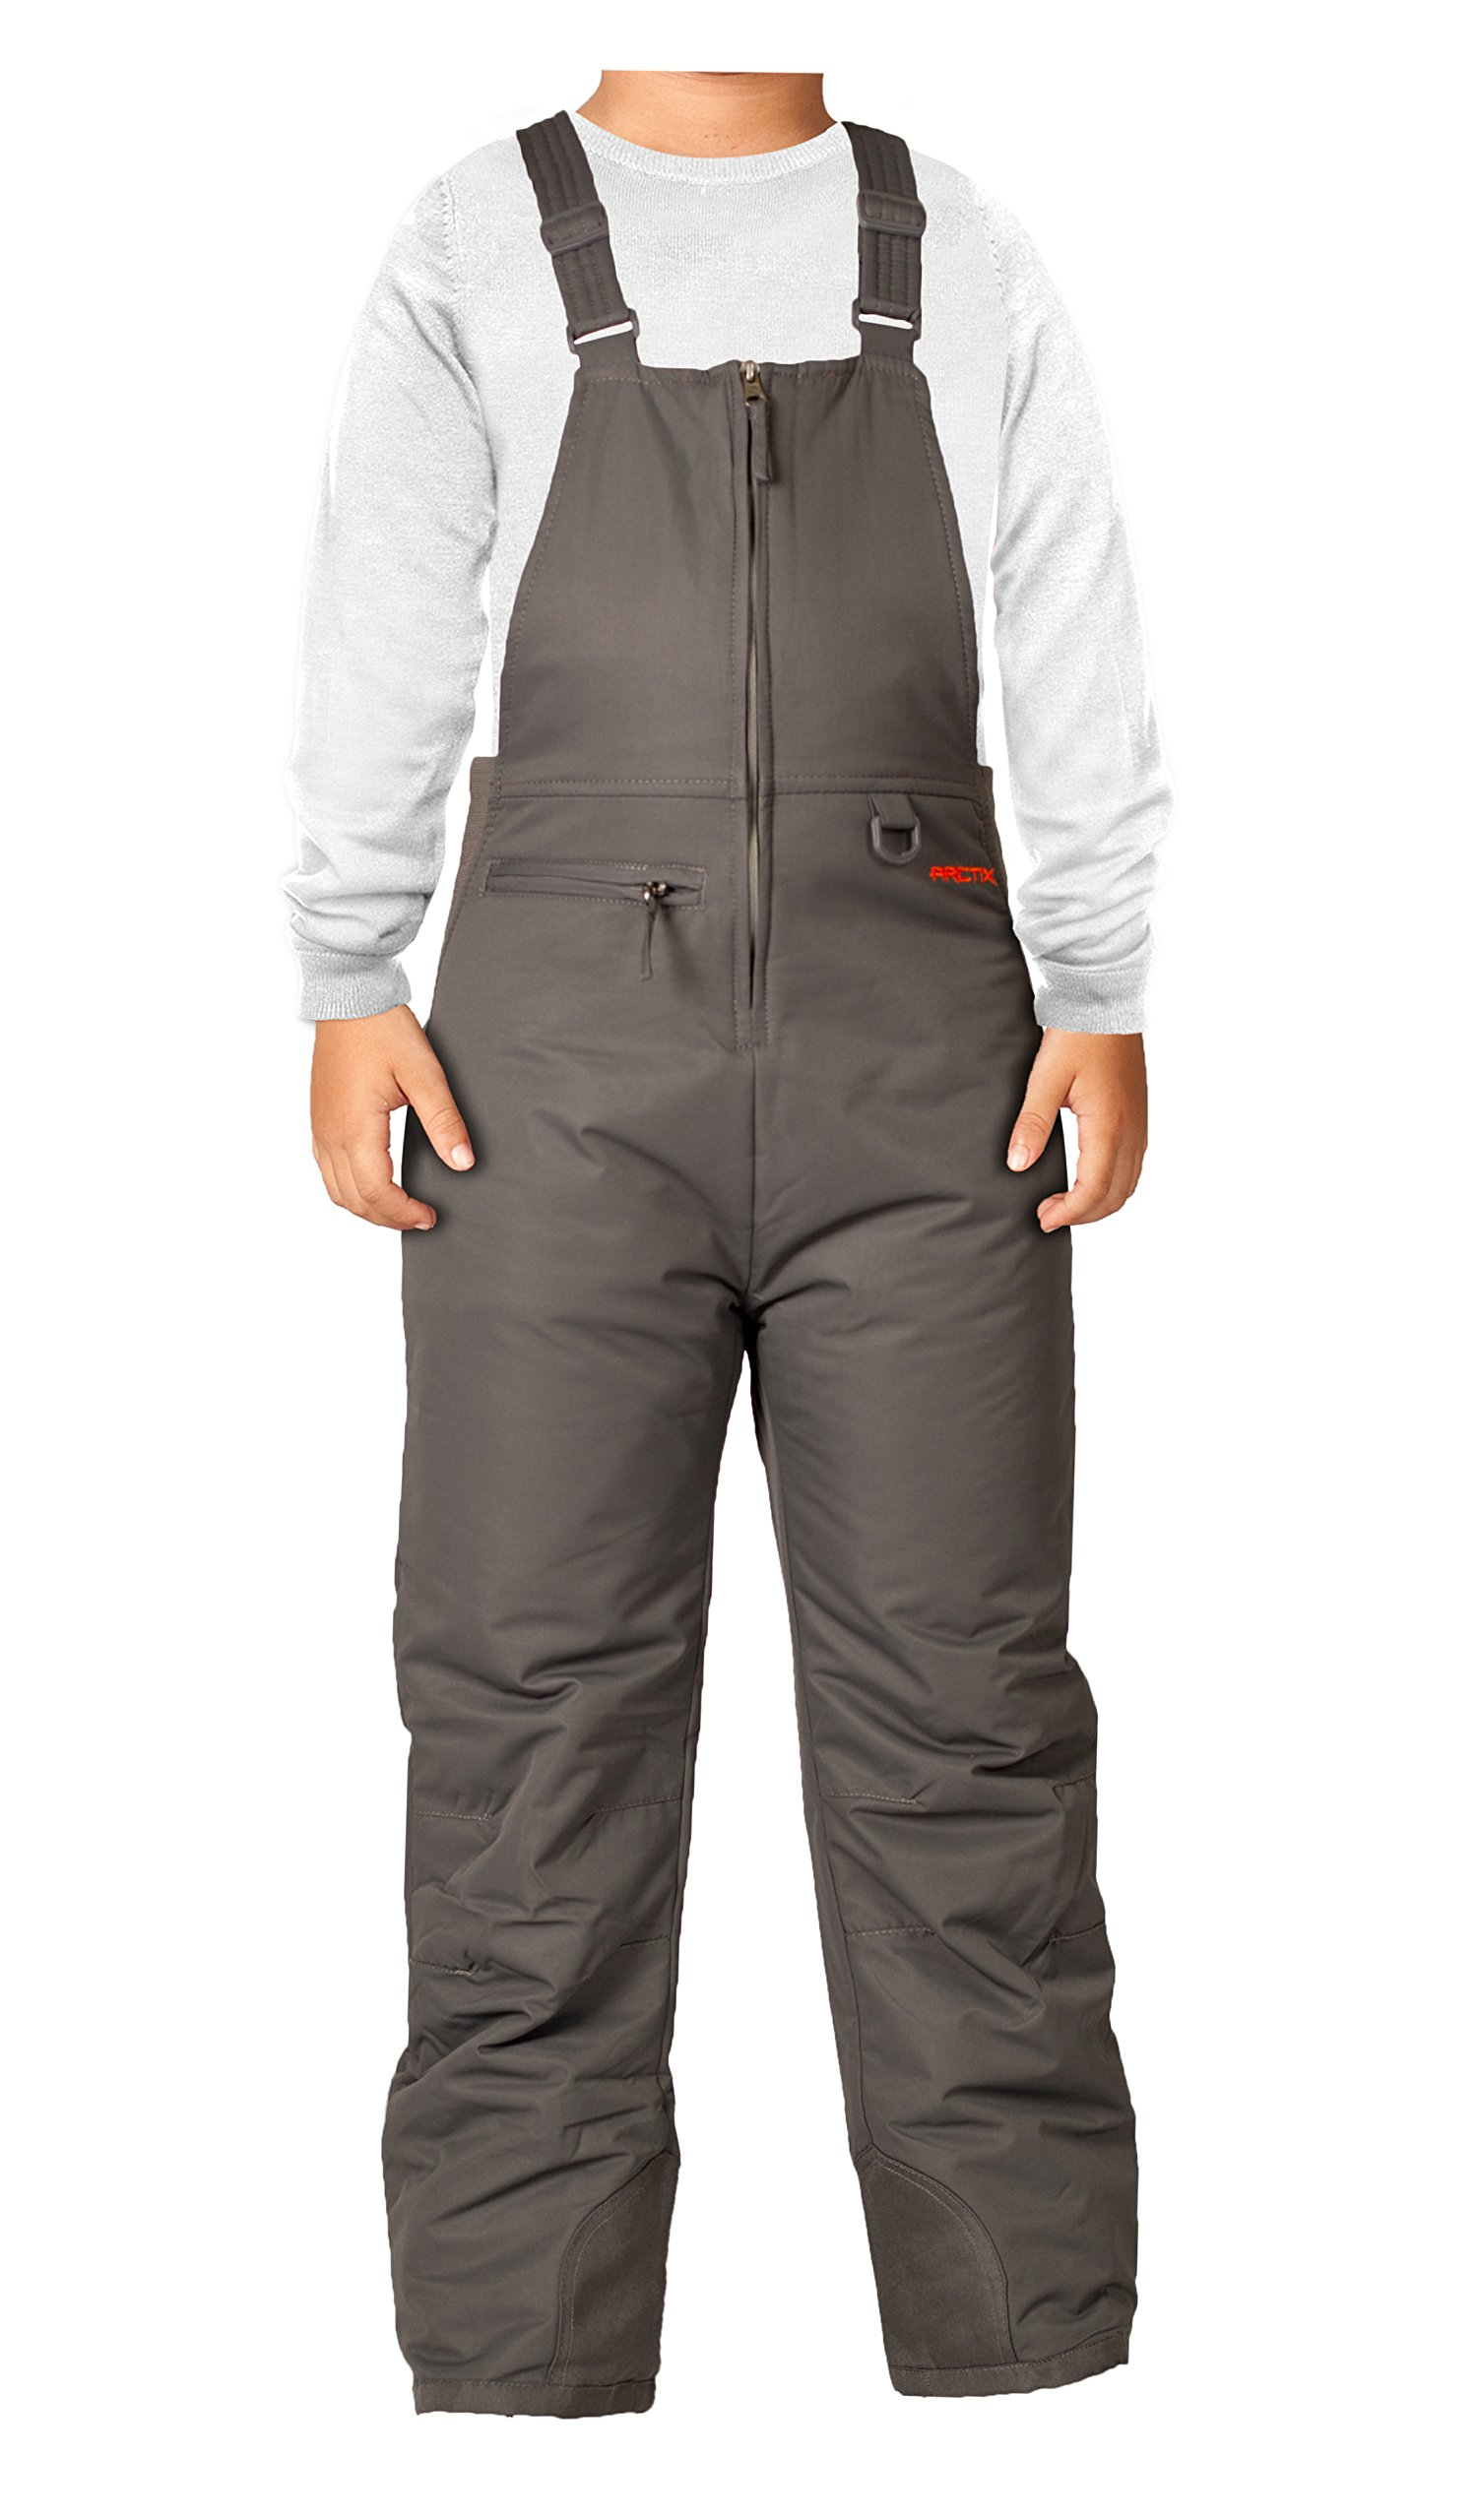 Arctix Youth Insulated Overalls Bib, X-Small, Charcoal